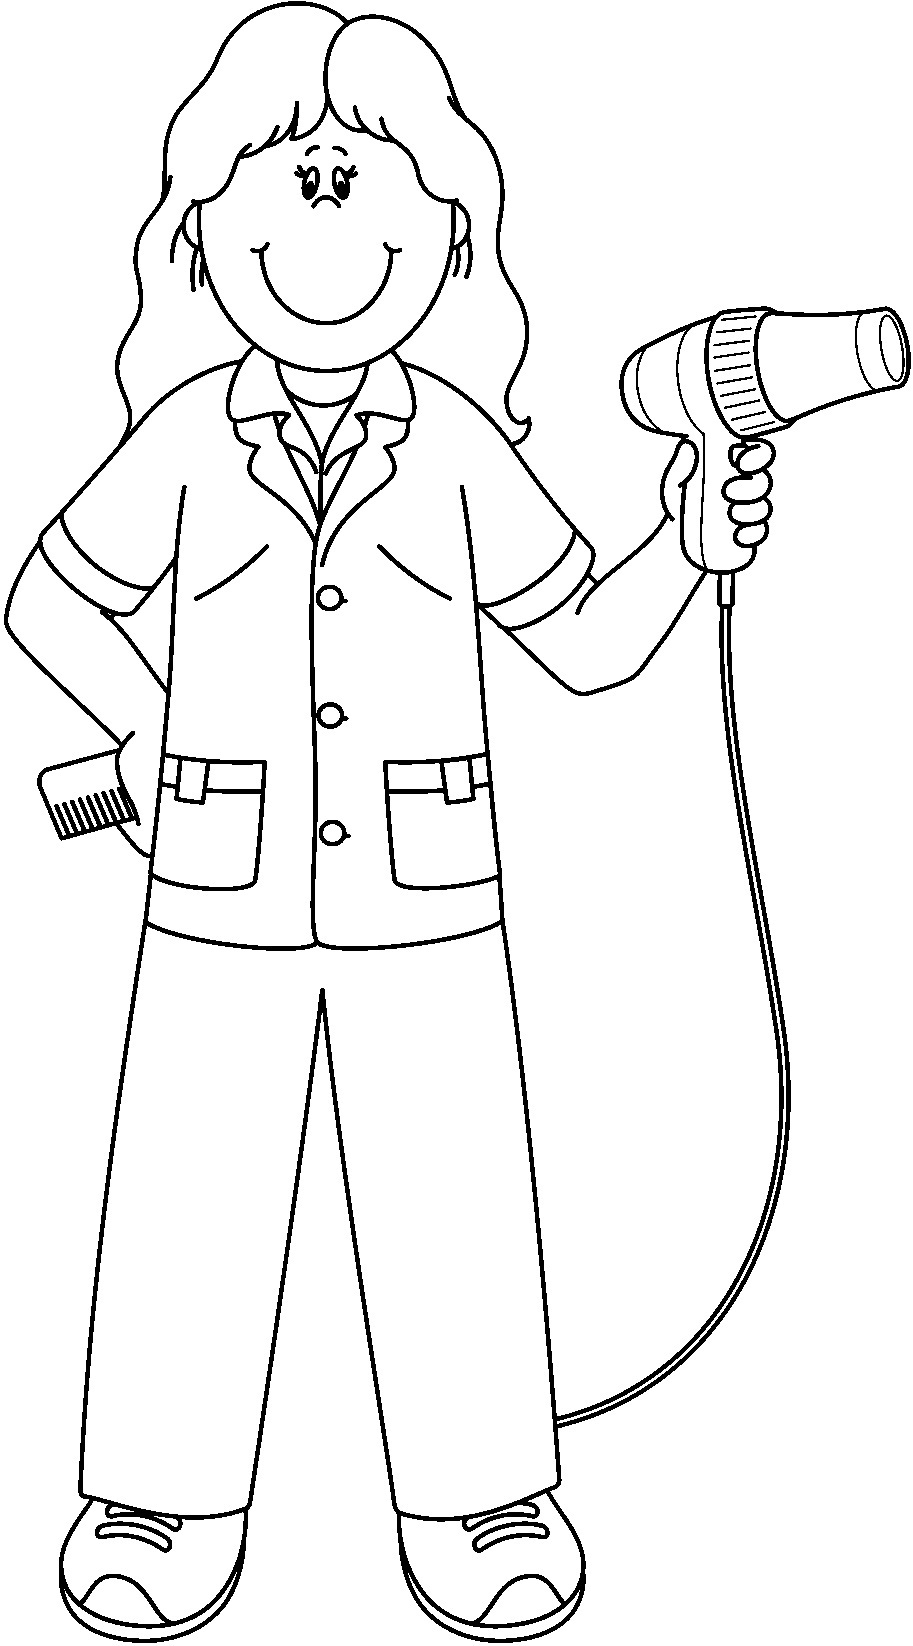 coloring pages community helper - photo#18